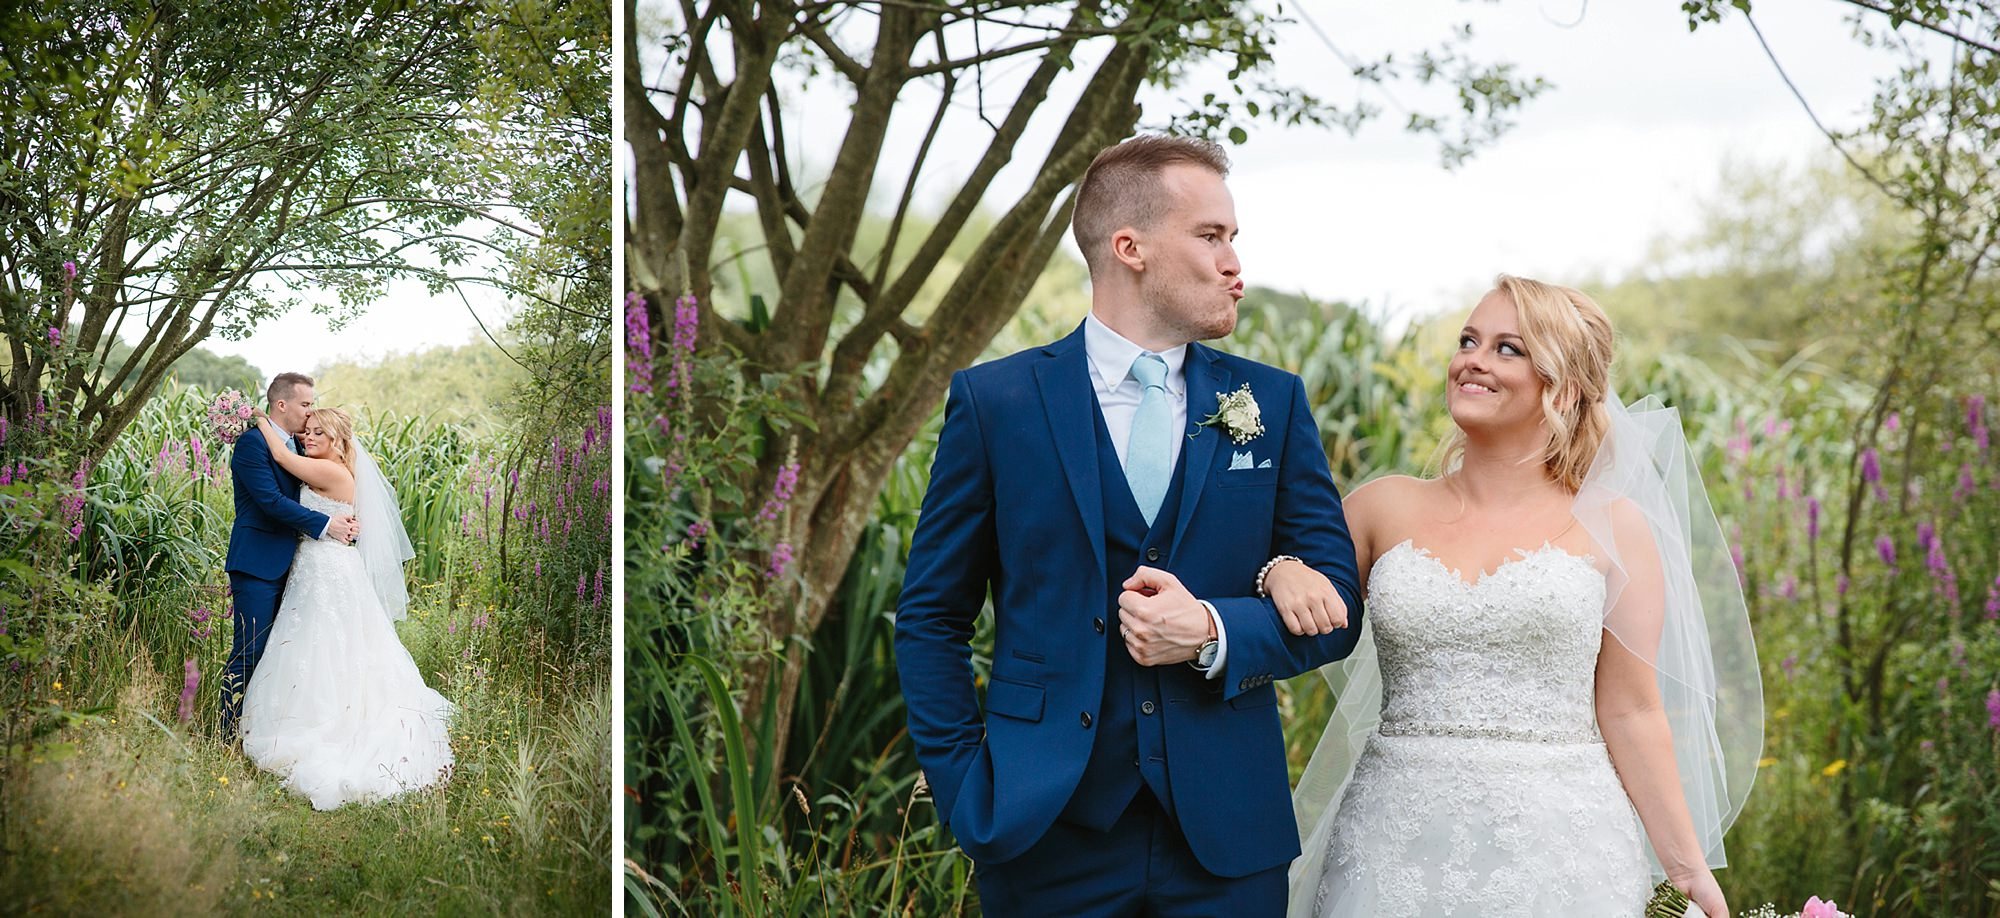 Old Greens Barn Newdigate wedding photography fun wedding portrait